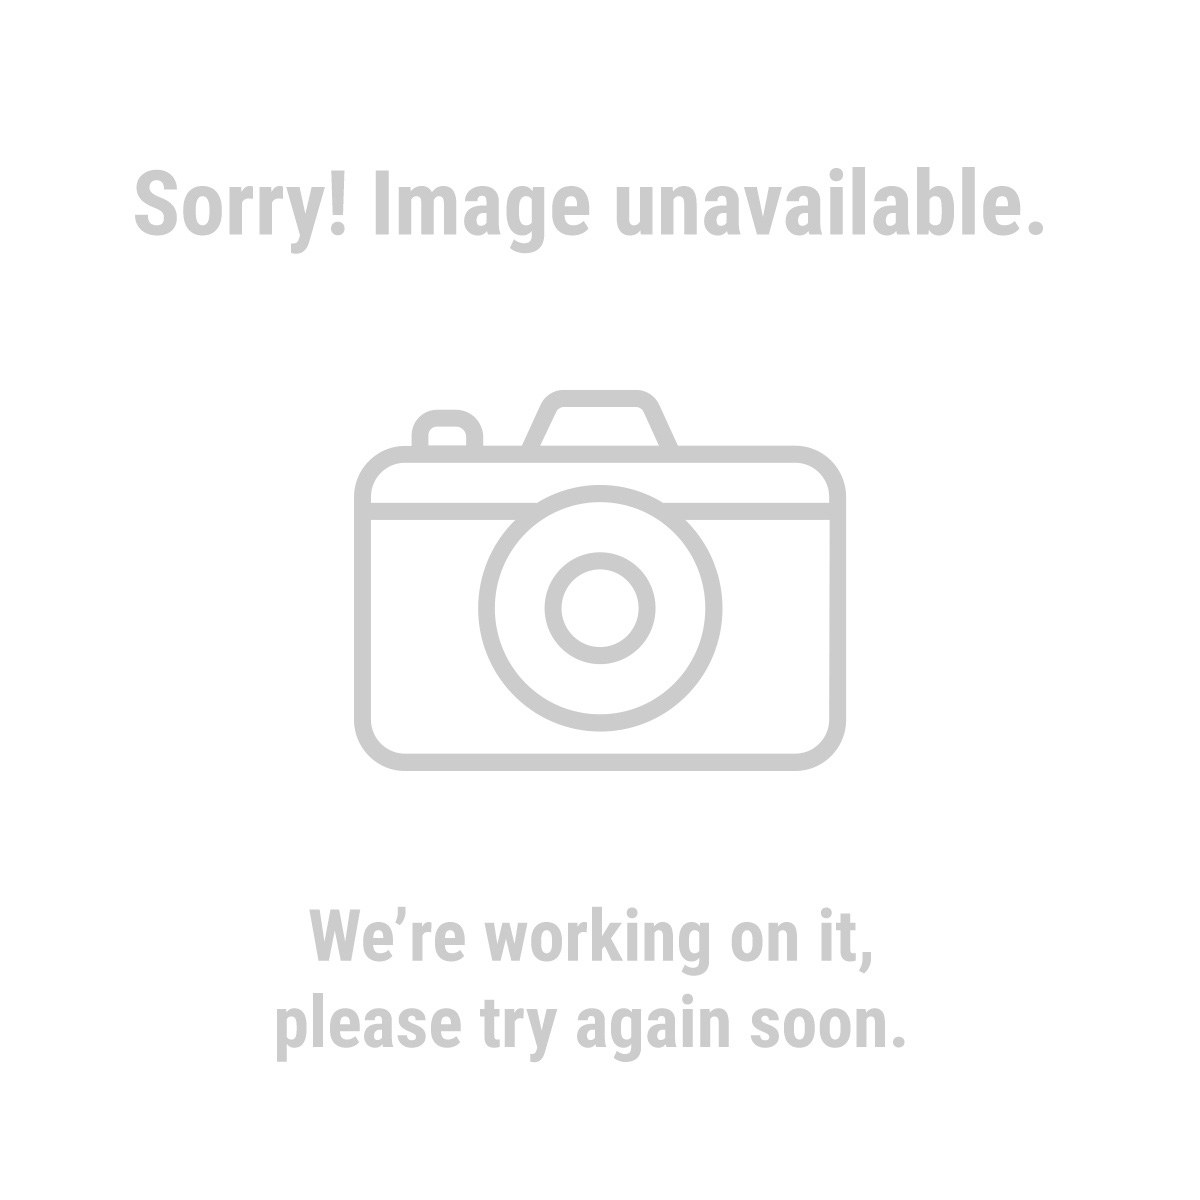 Storehouse 67554 382 Piece O-Ring Assortment